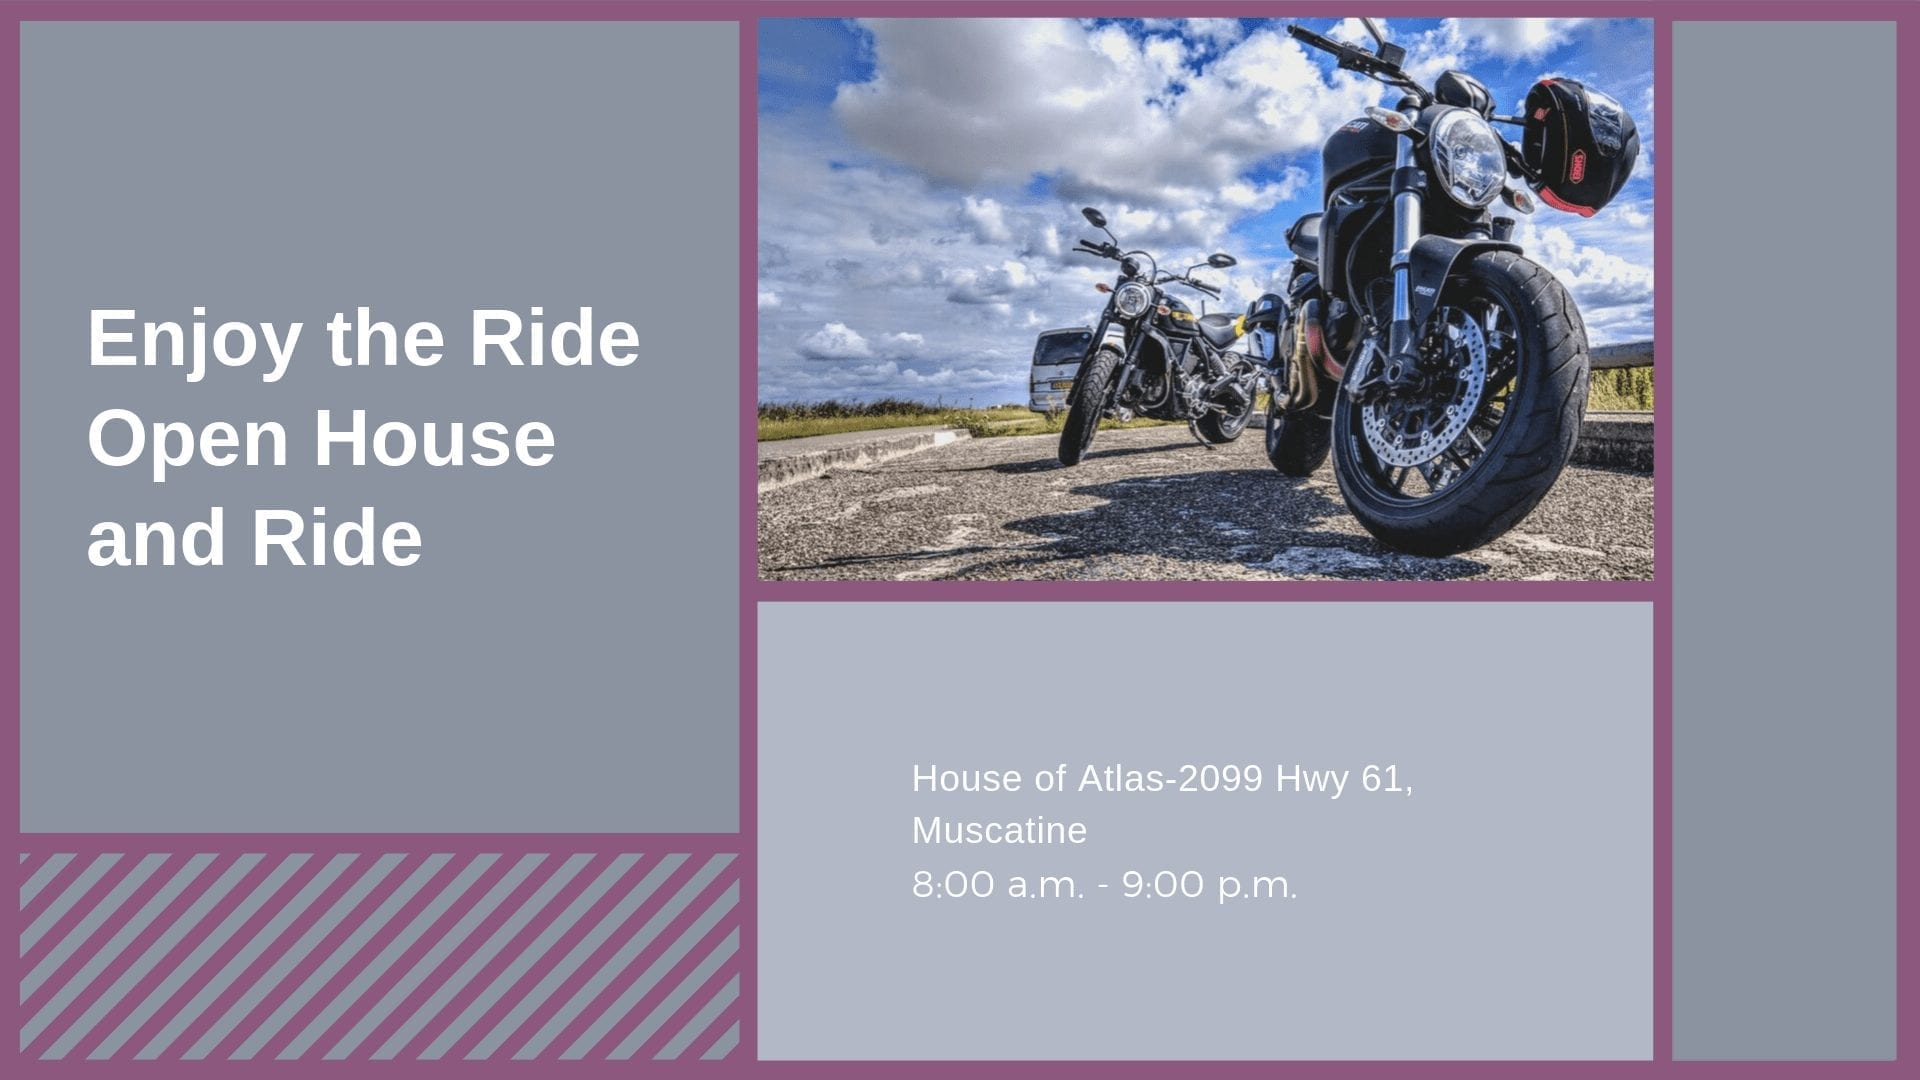 Enjoy the Ride Open House and Ride